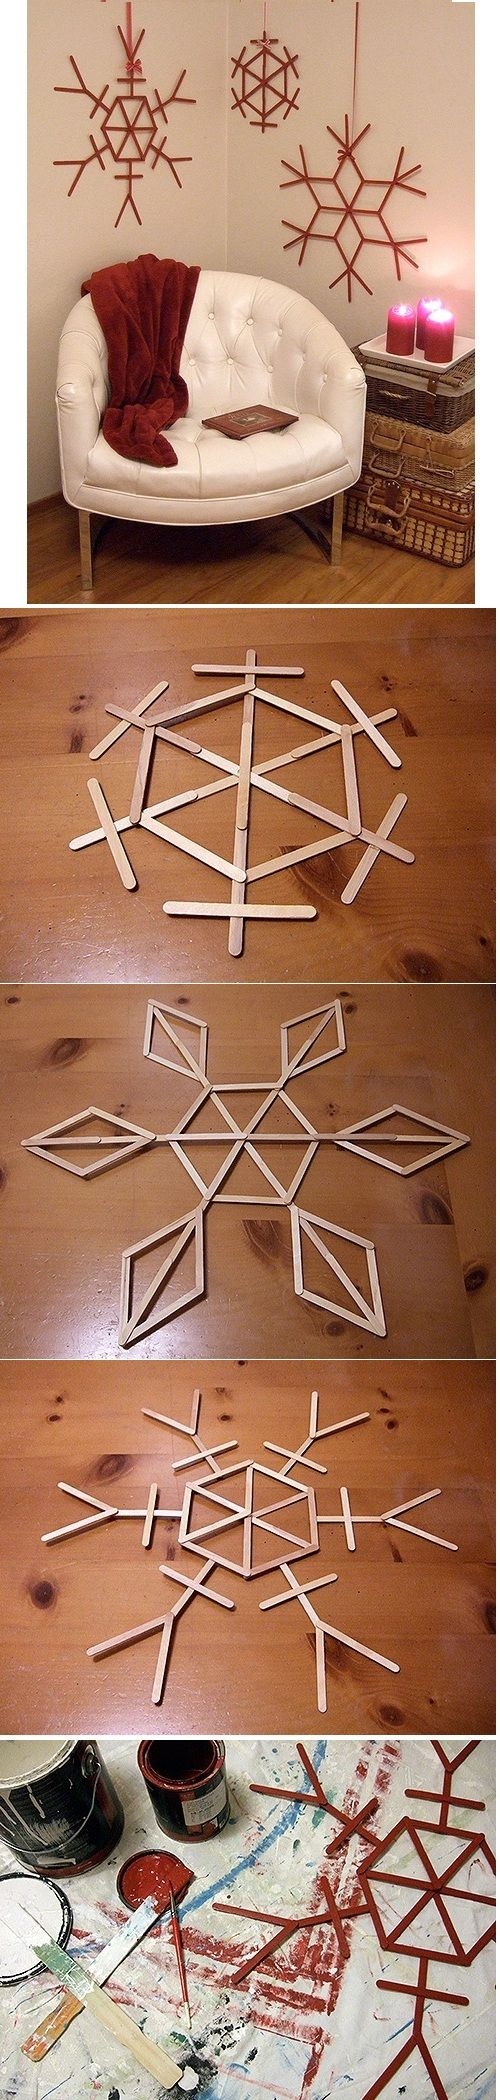 Popsicle Stick Snowflakes (holiday prop DIY)